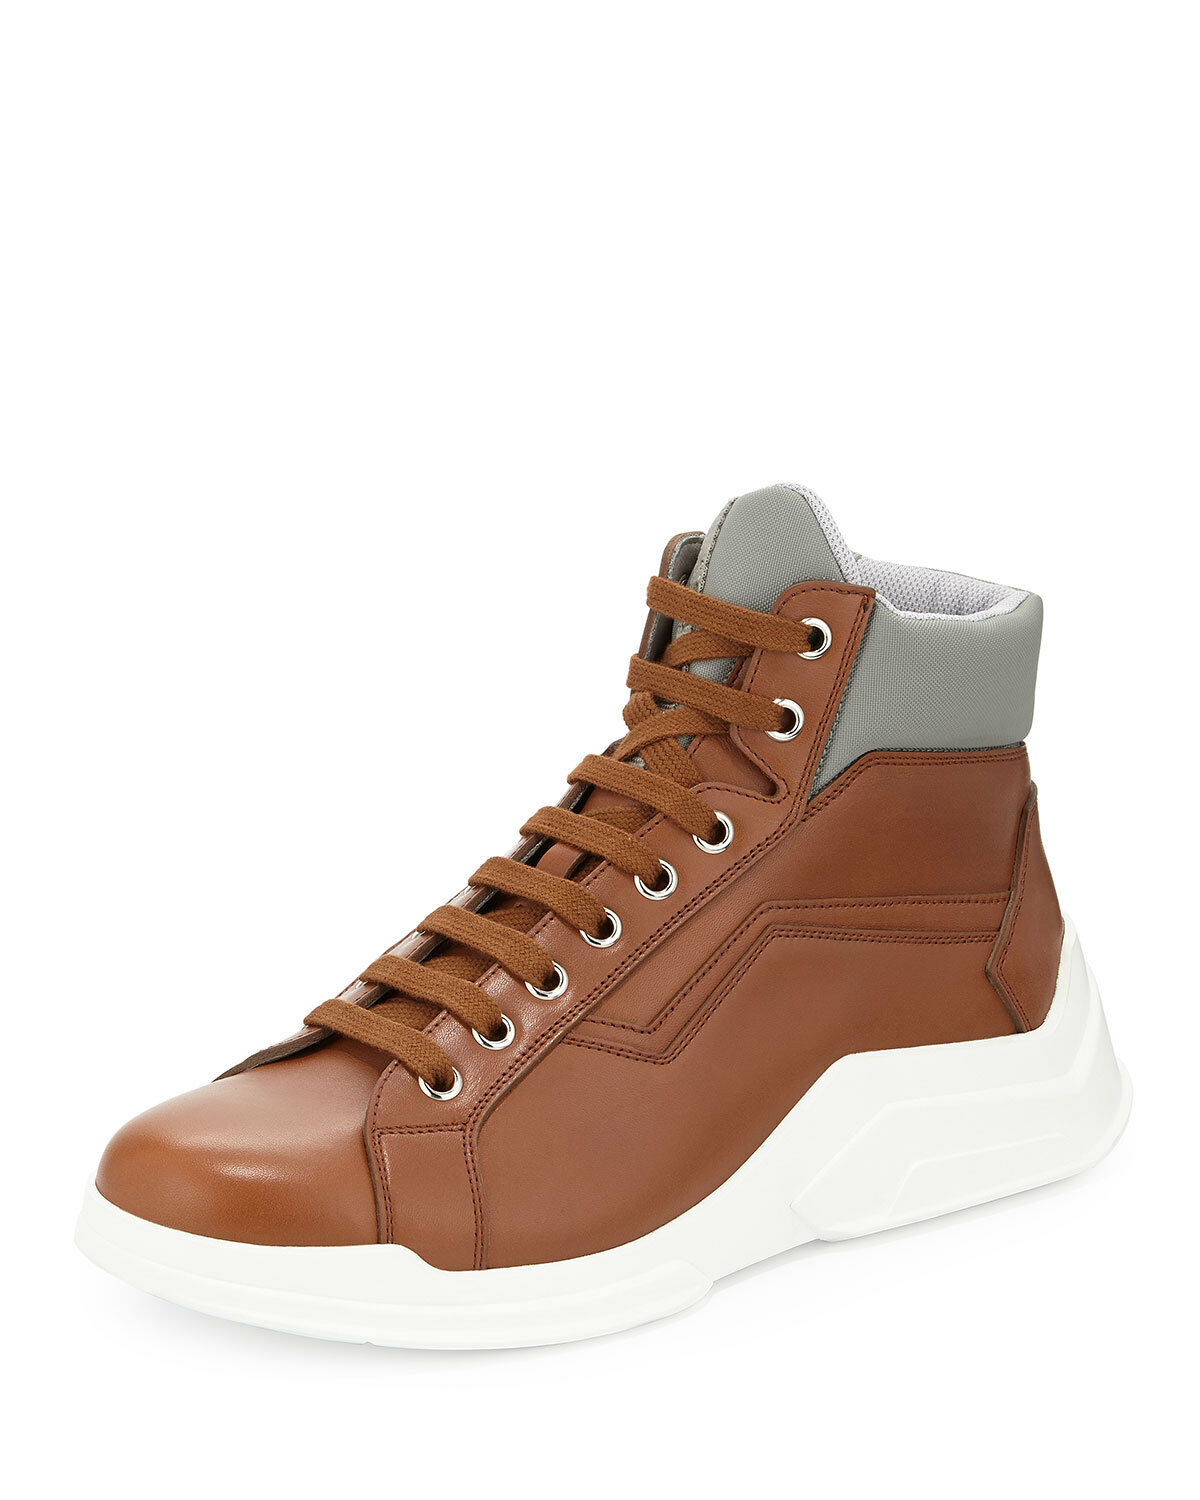 100% AUTH NEW MEN PRADA NOVO CALF BROWN SHOW HIGH TOP SNEAKERS  US 9.5